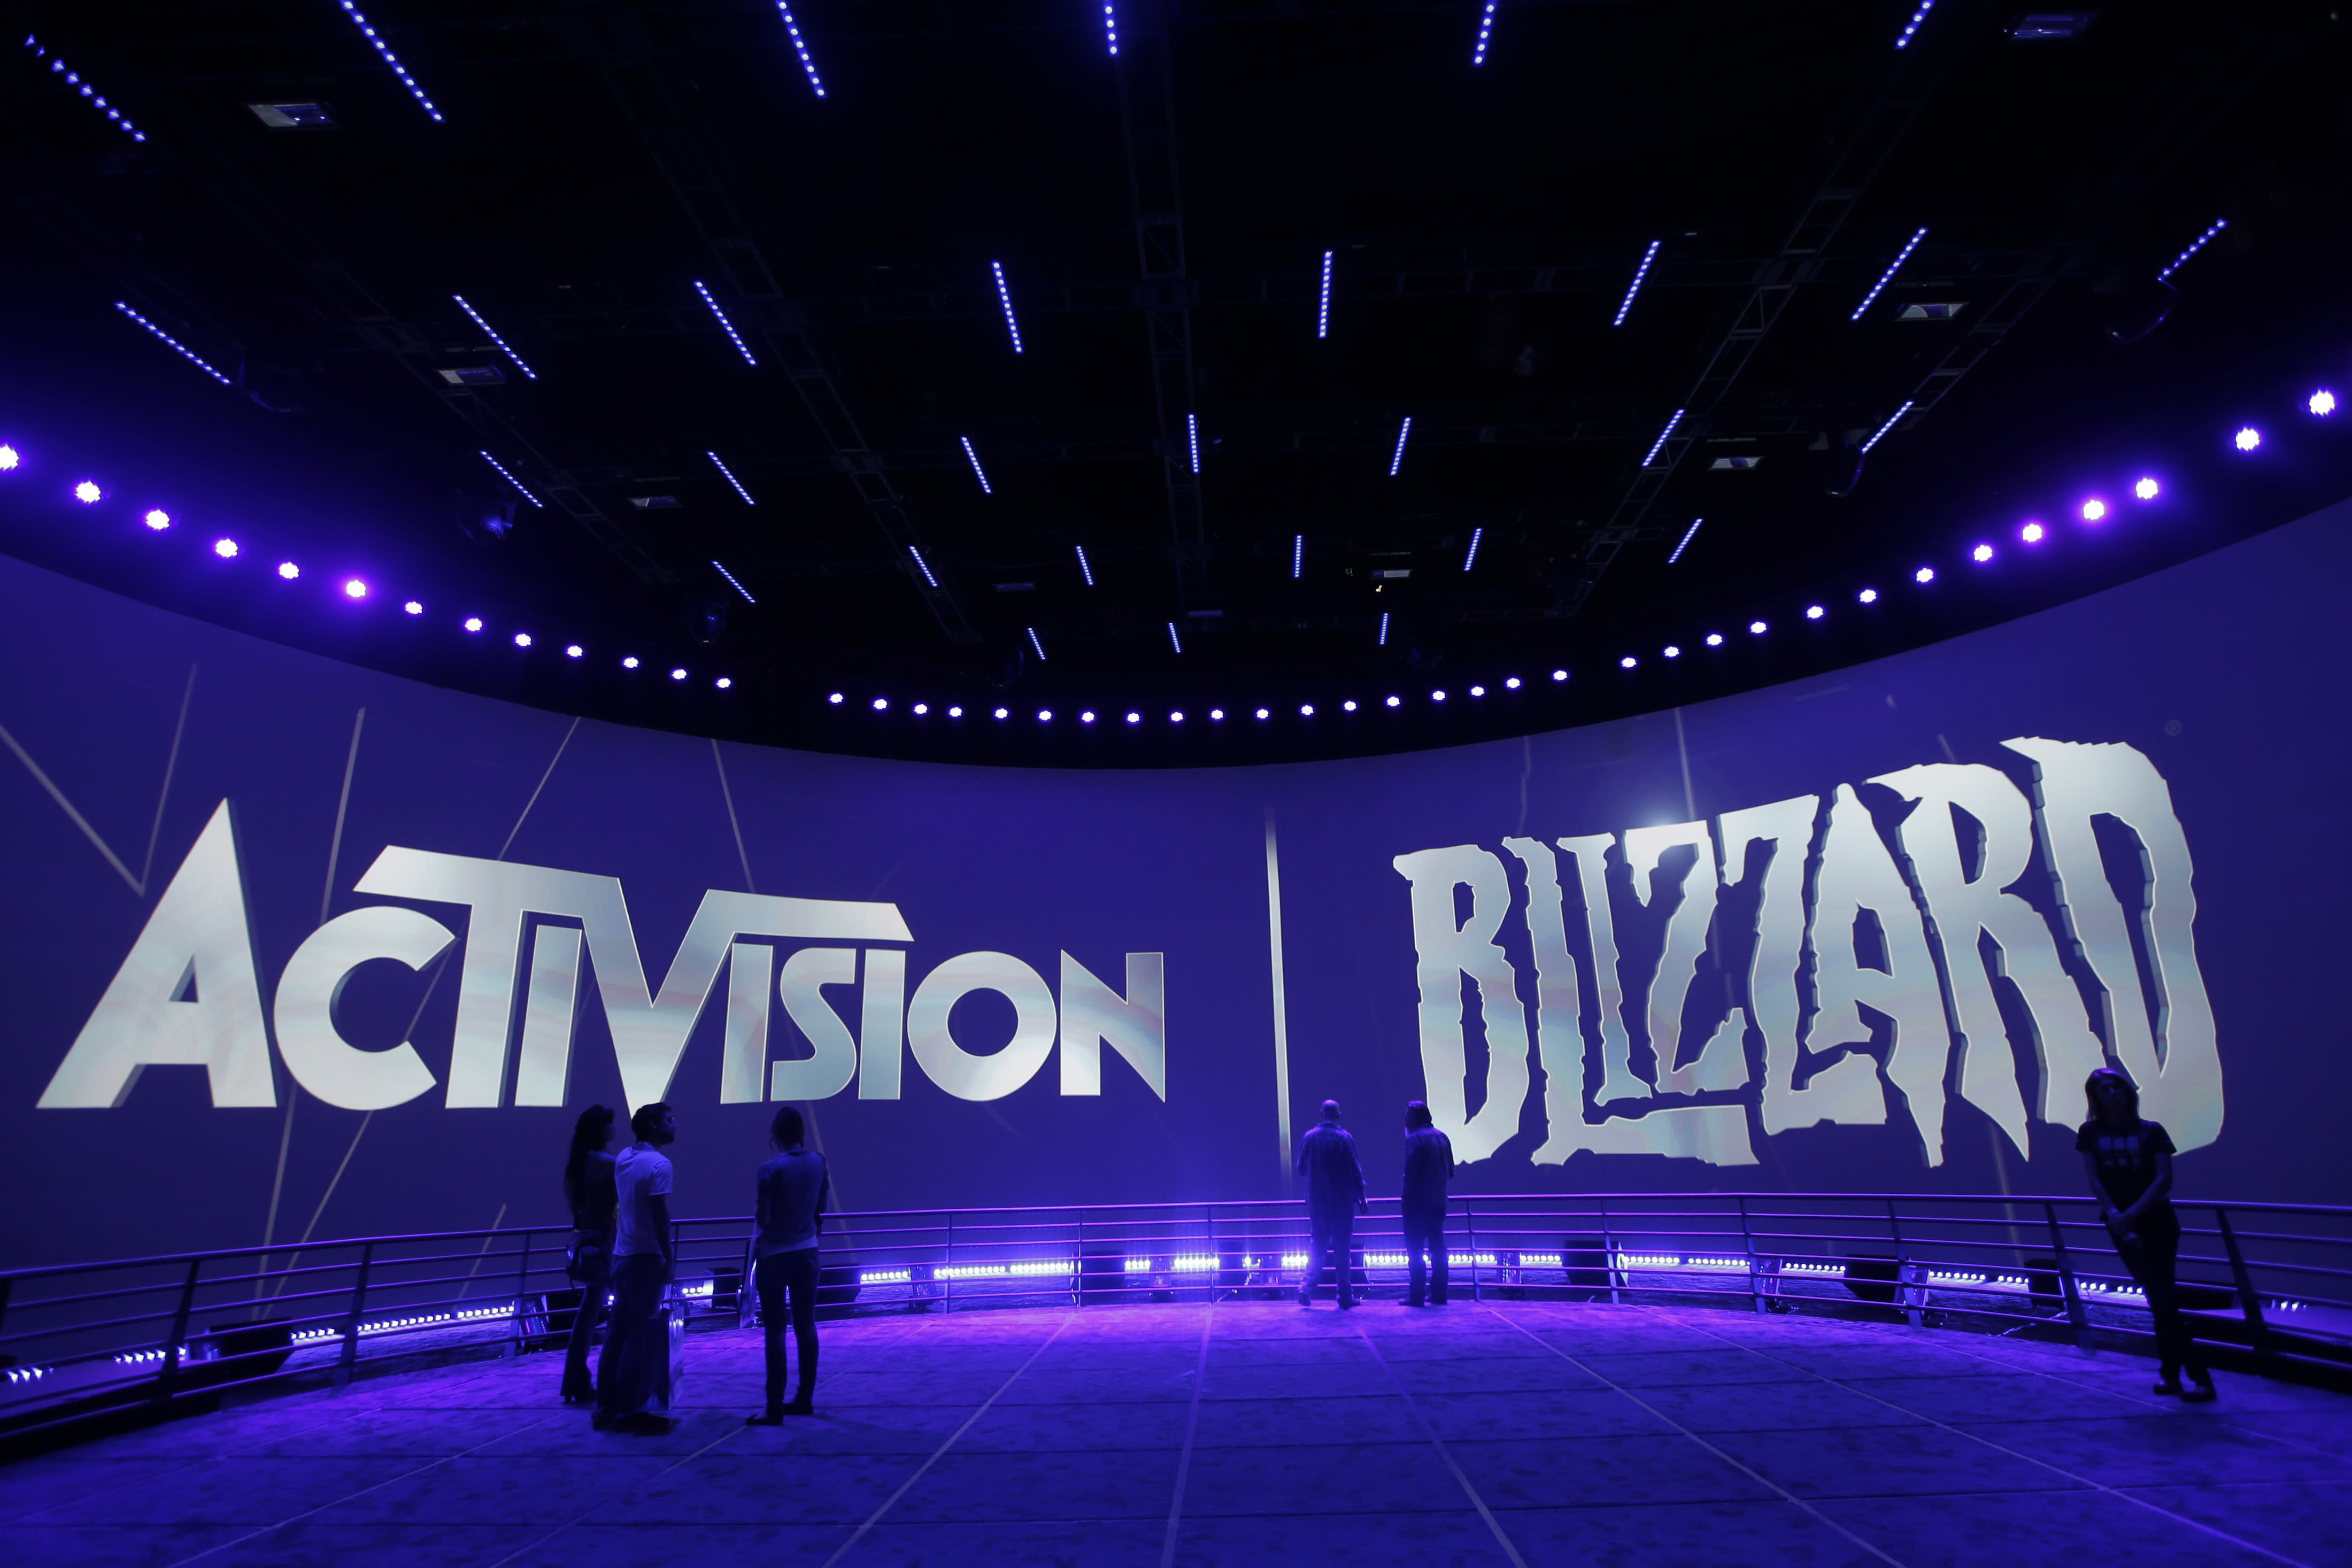 Activision Blizzard Reports Q3 Earnings